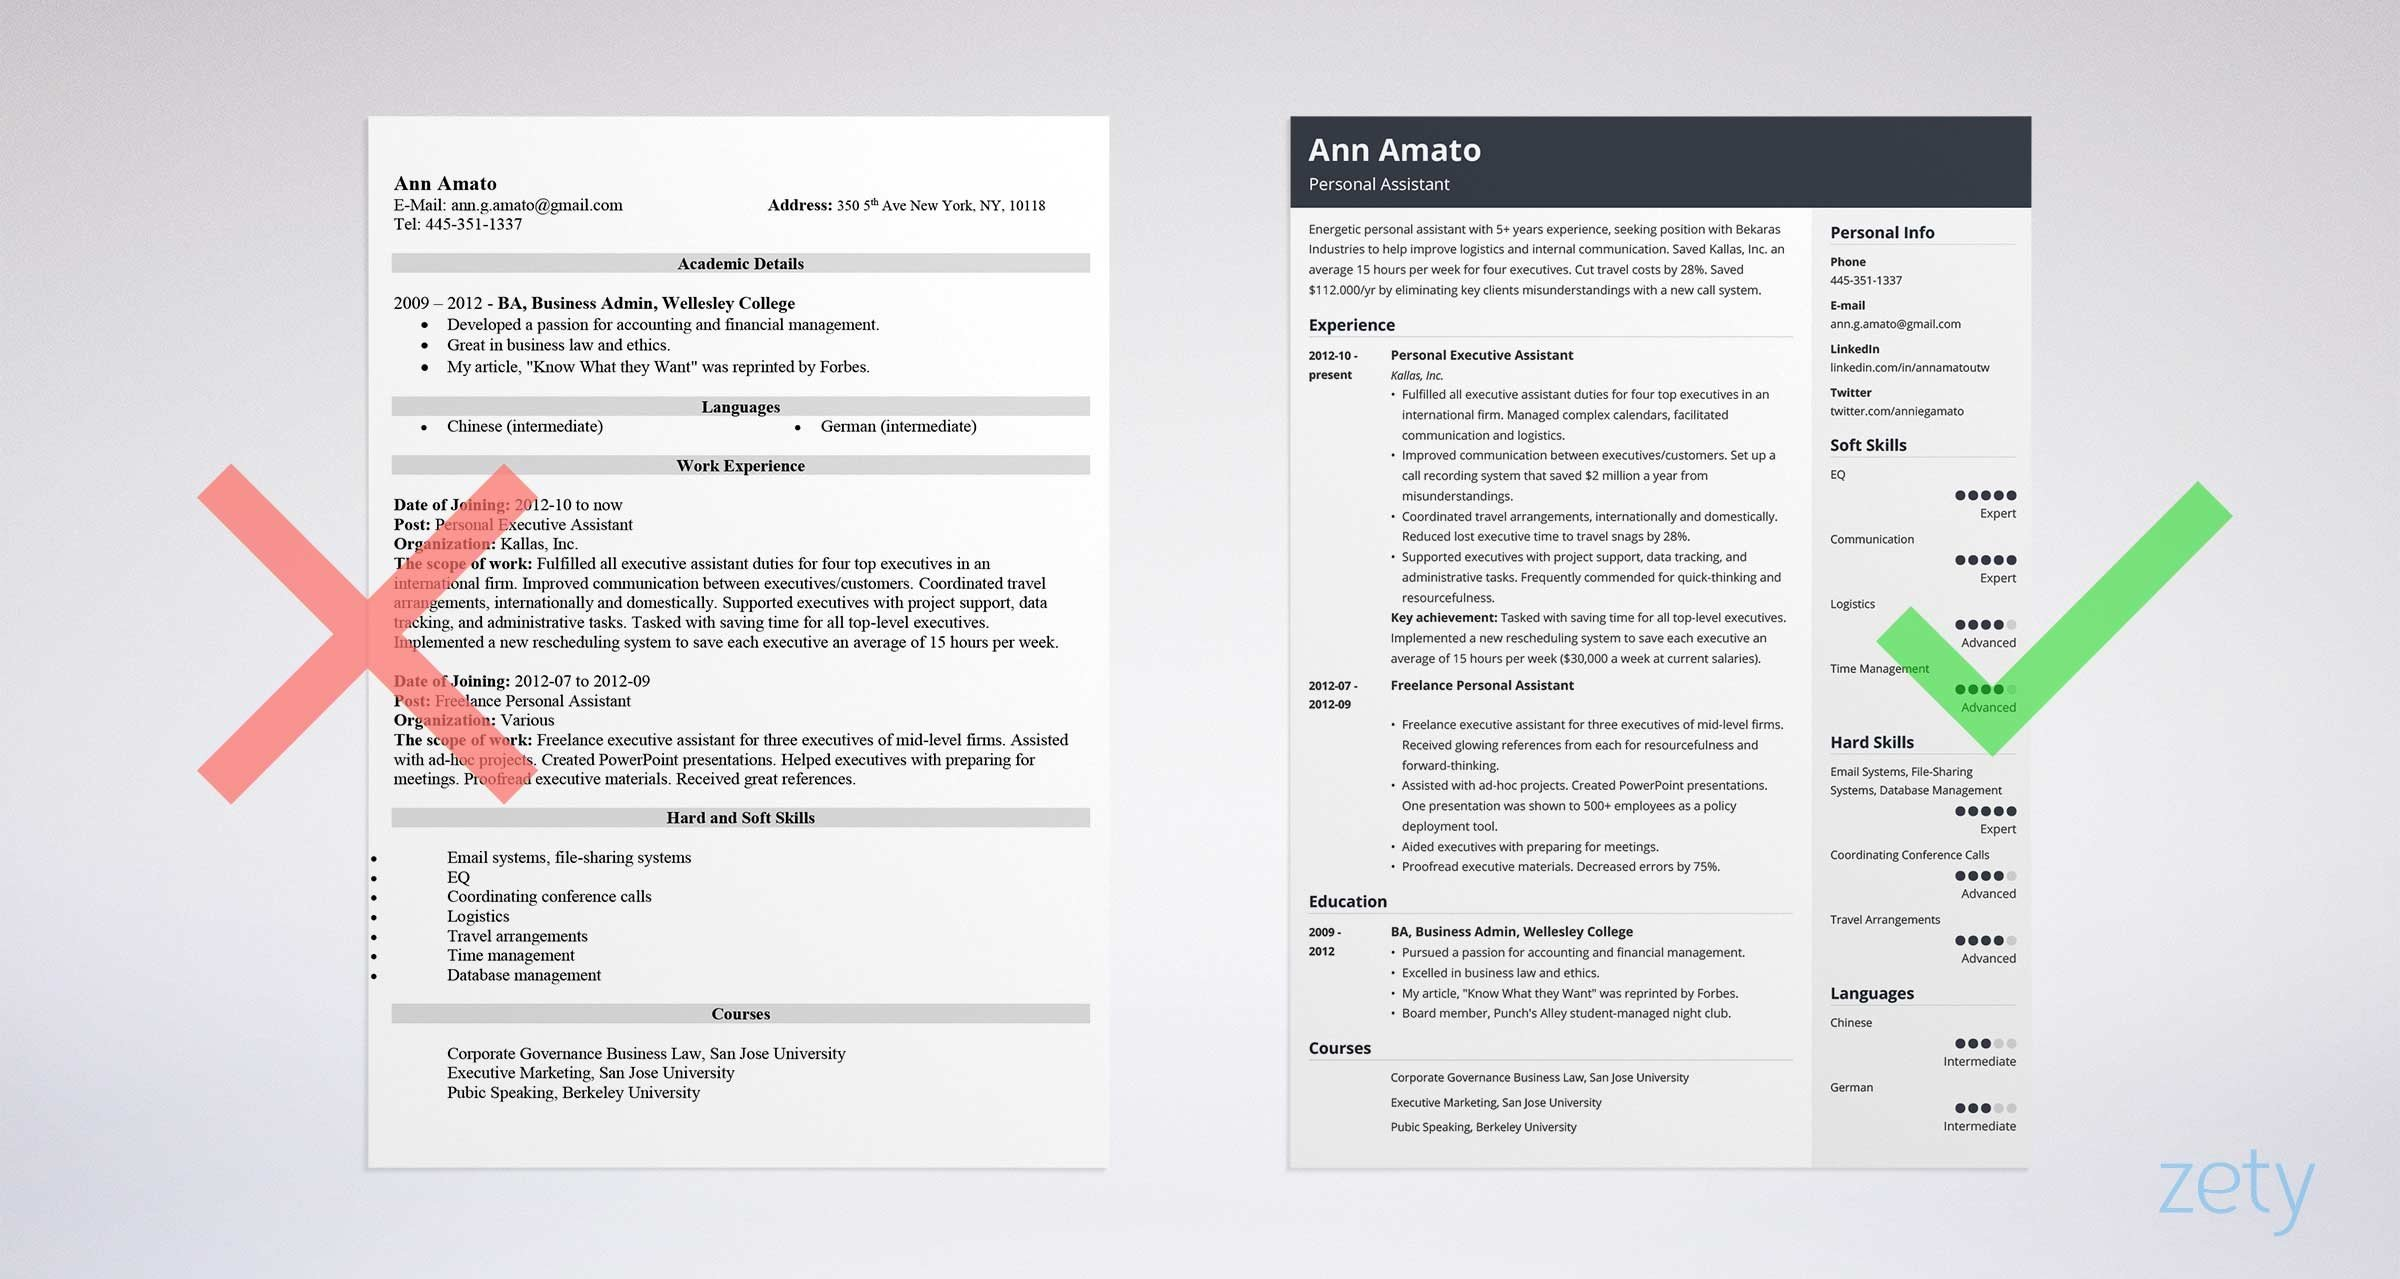 Personal Assistant Resume Sample & Writing Guide 20